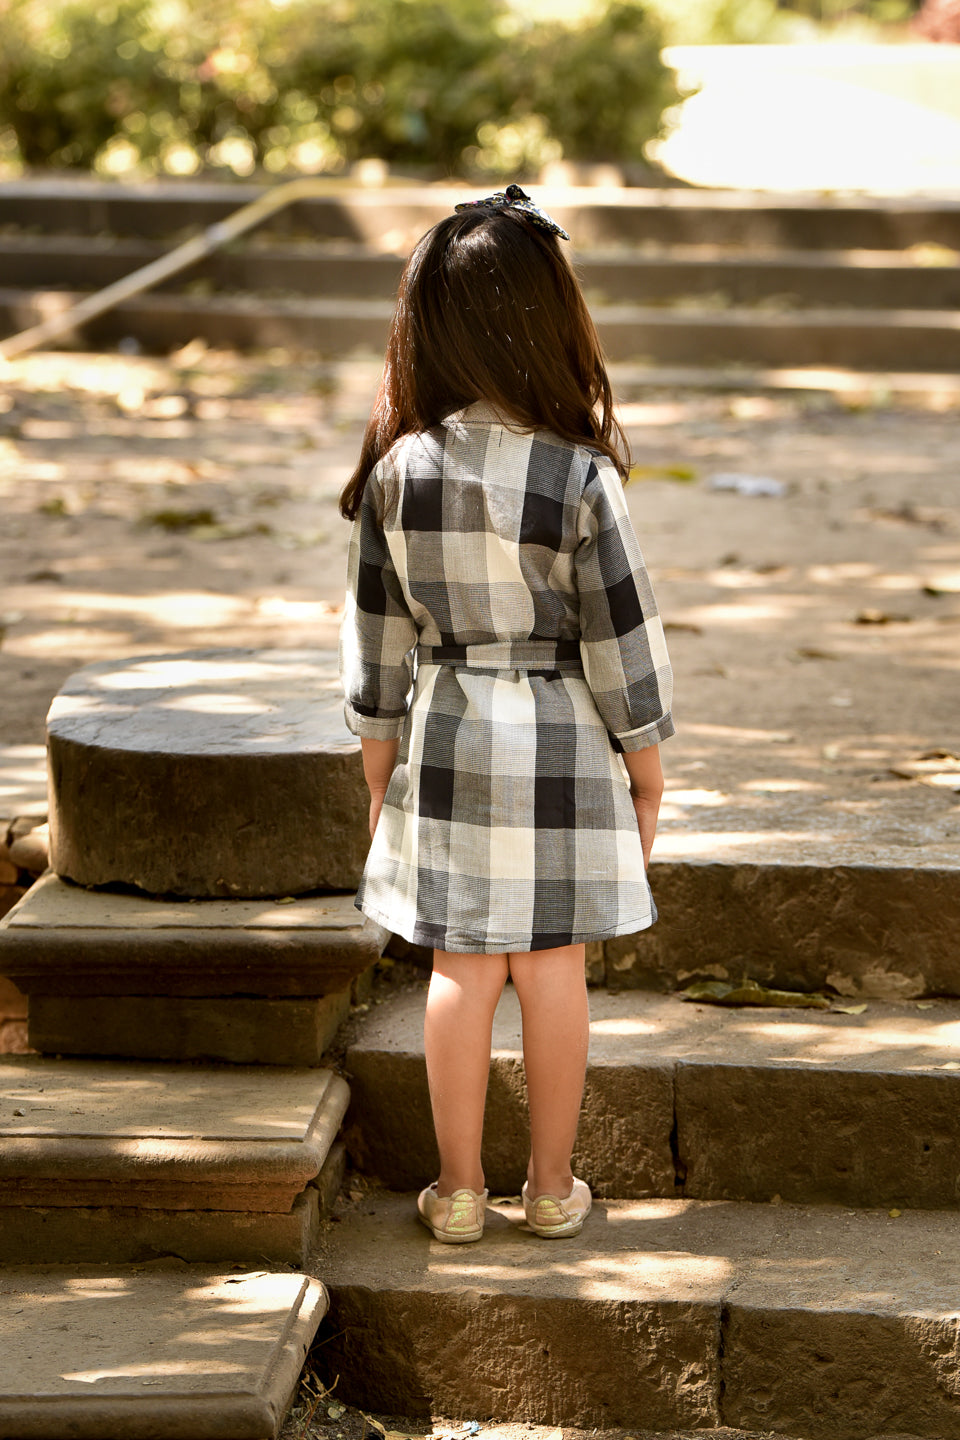 Collar Neck Dress with Checks Print